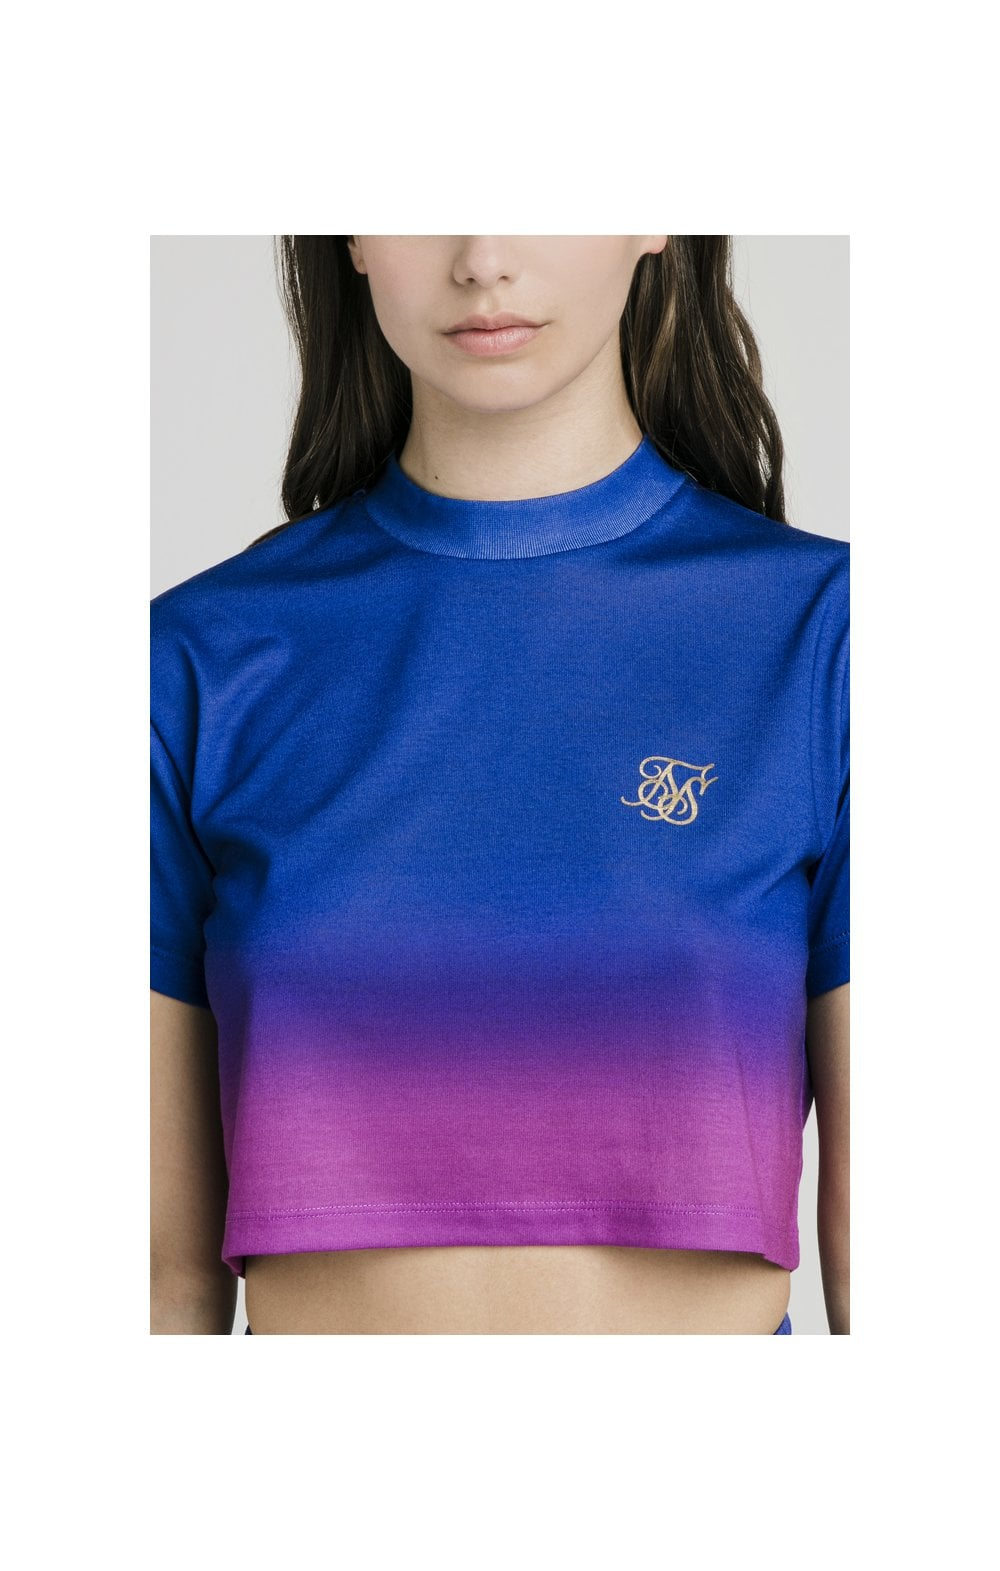 SikSilk Fade Crop Tee - Blue & Rose WOMEN SIZES: 6-XXS